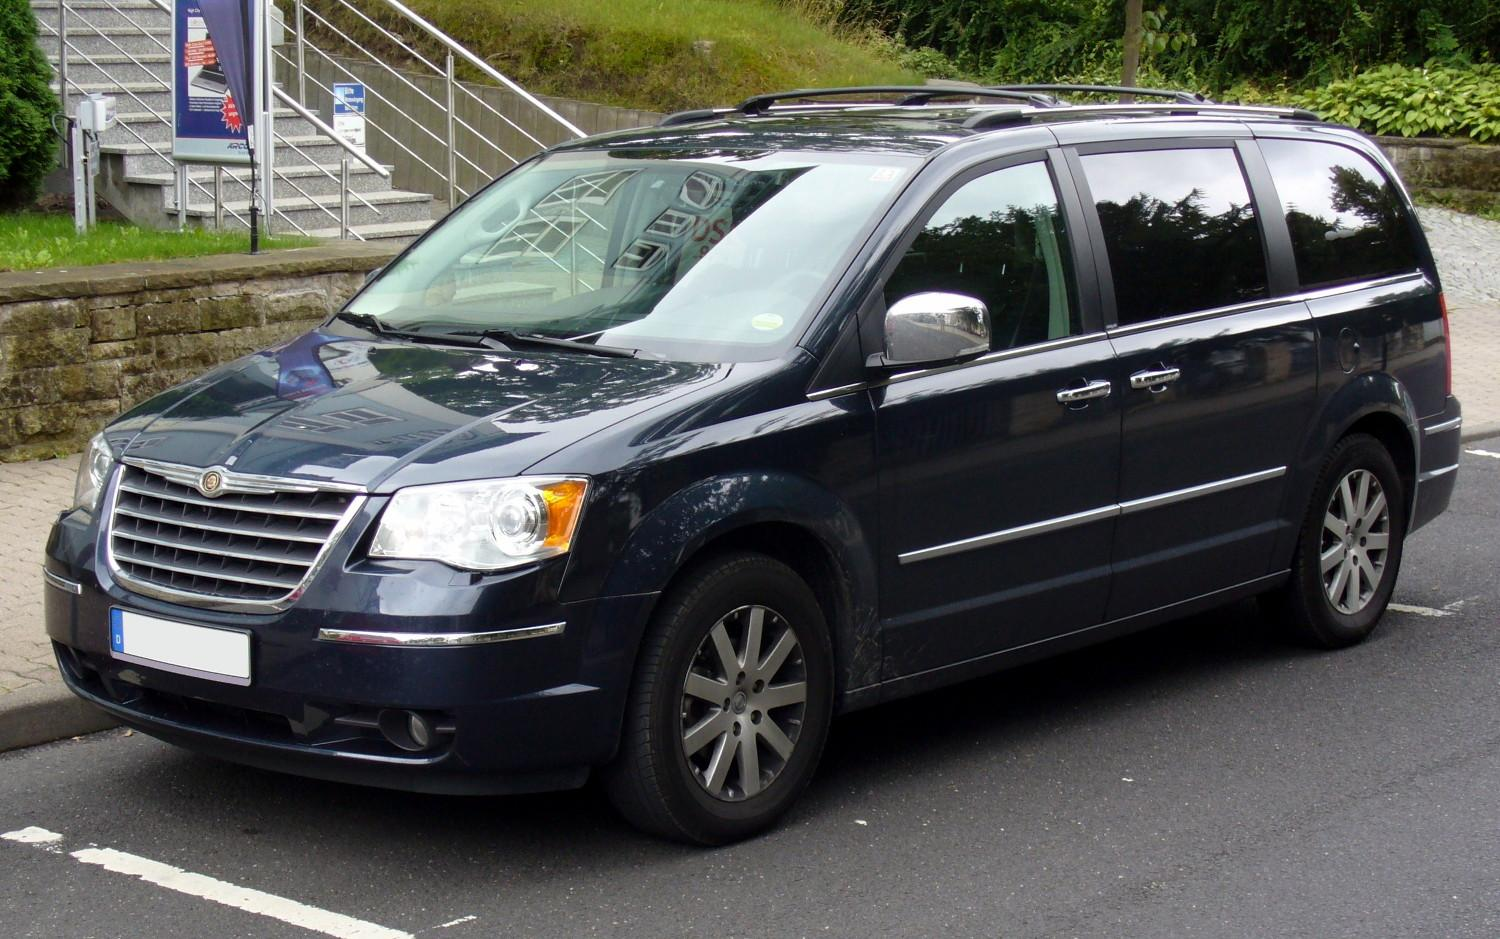 Chrysler_Grand_Voyager_CRD.JPG